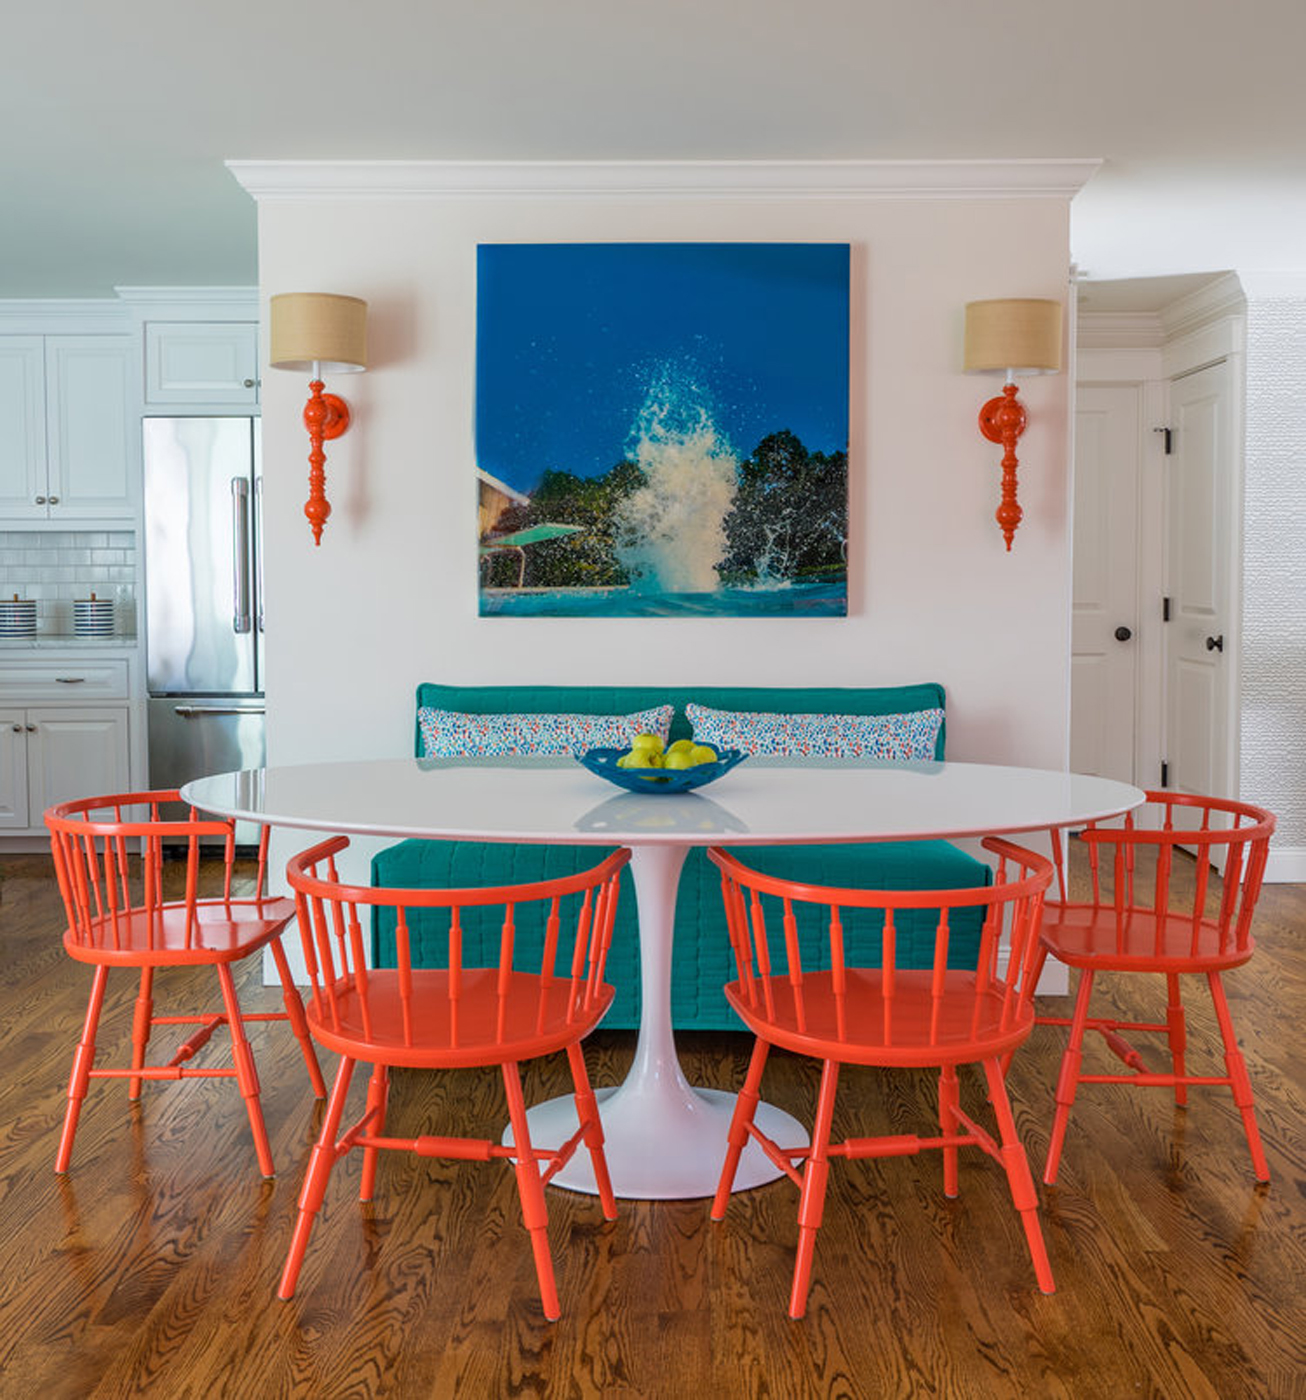 Colorful high-end interior design by Martha's Vineyard Interior Design